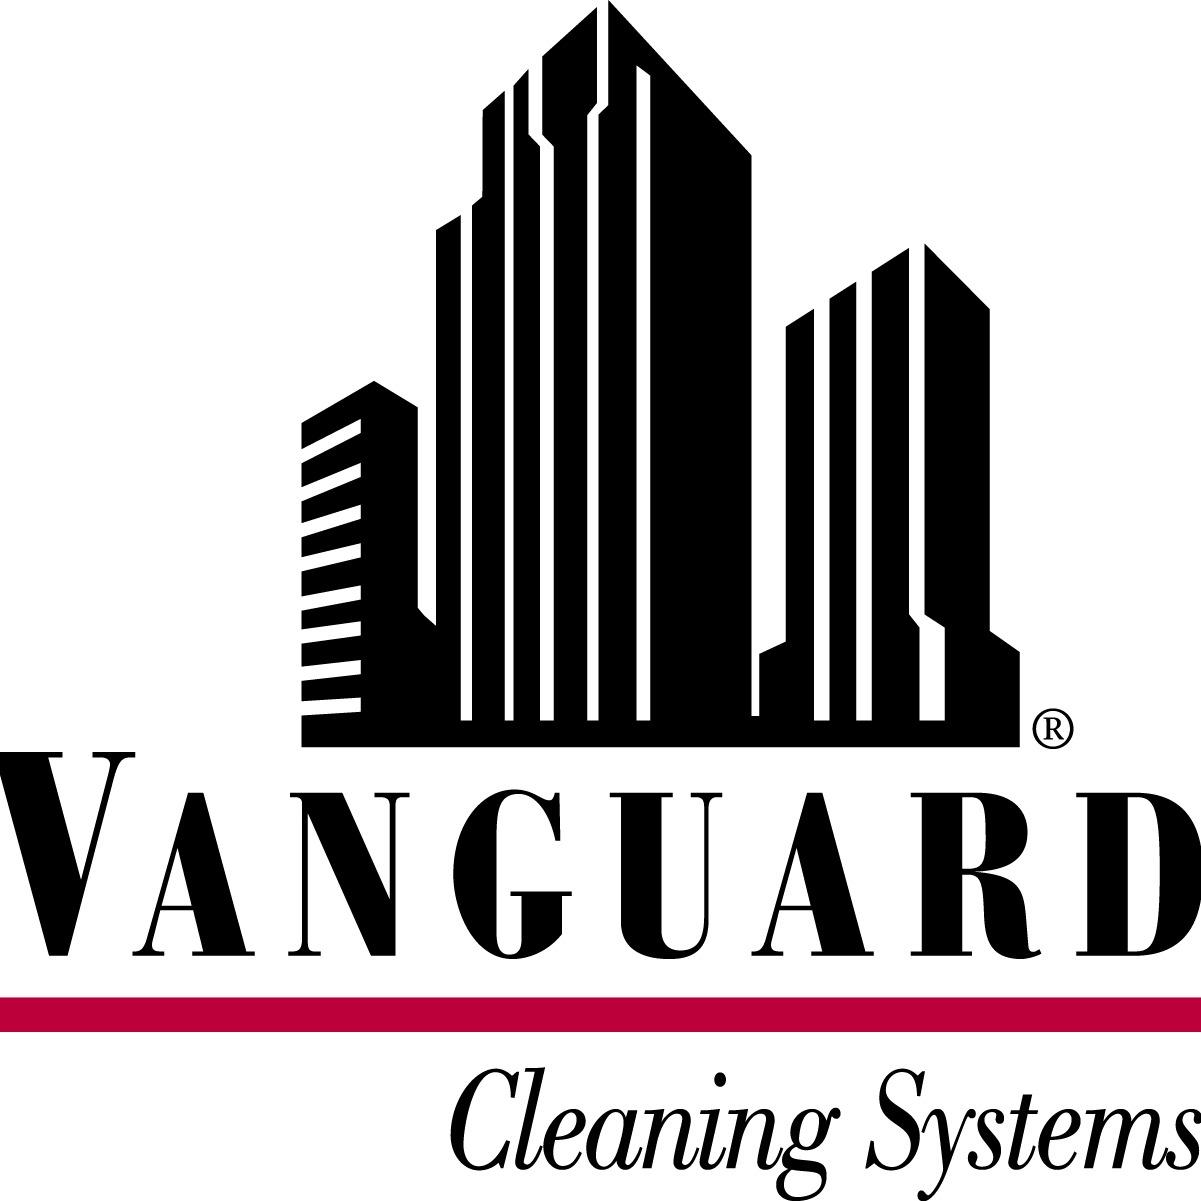 Vanguard Cleaning Systems of Portland